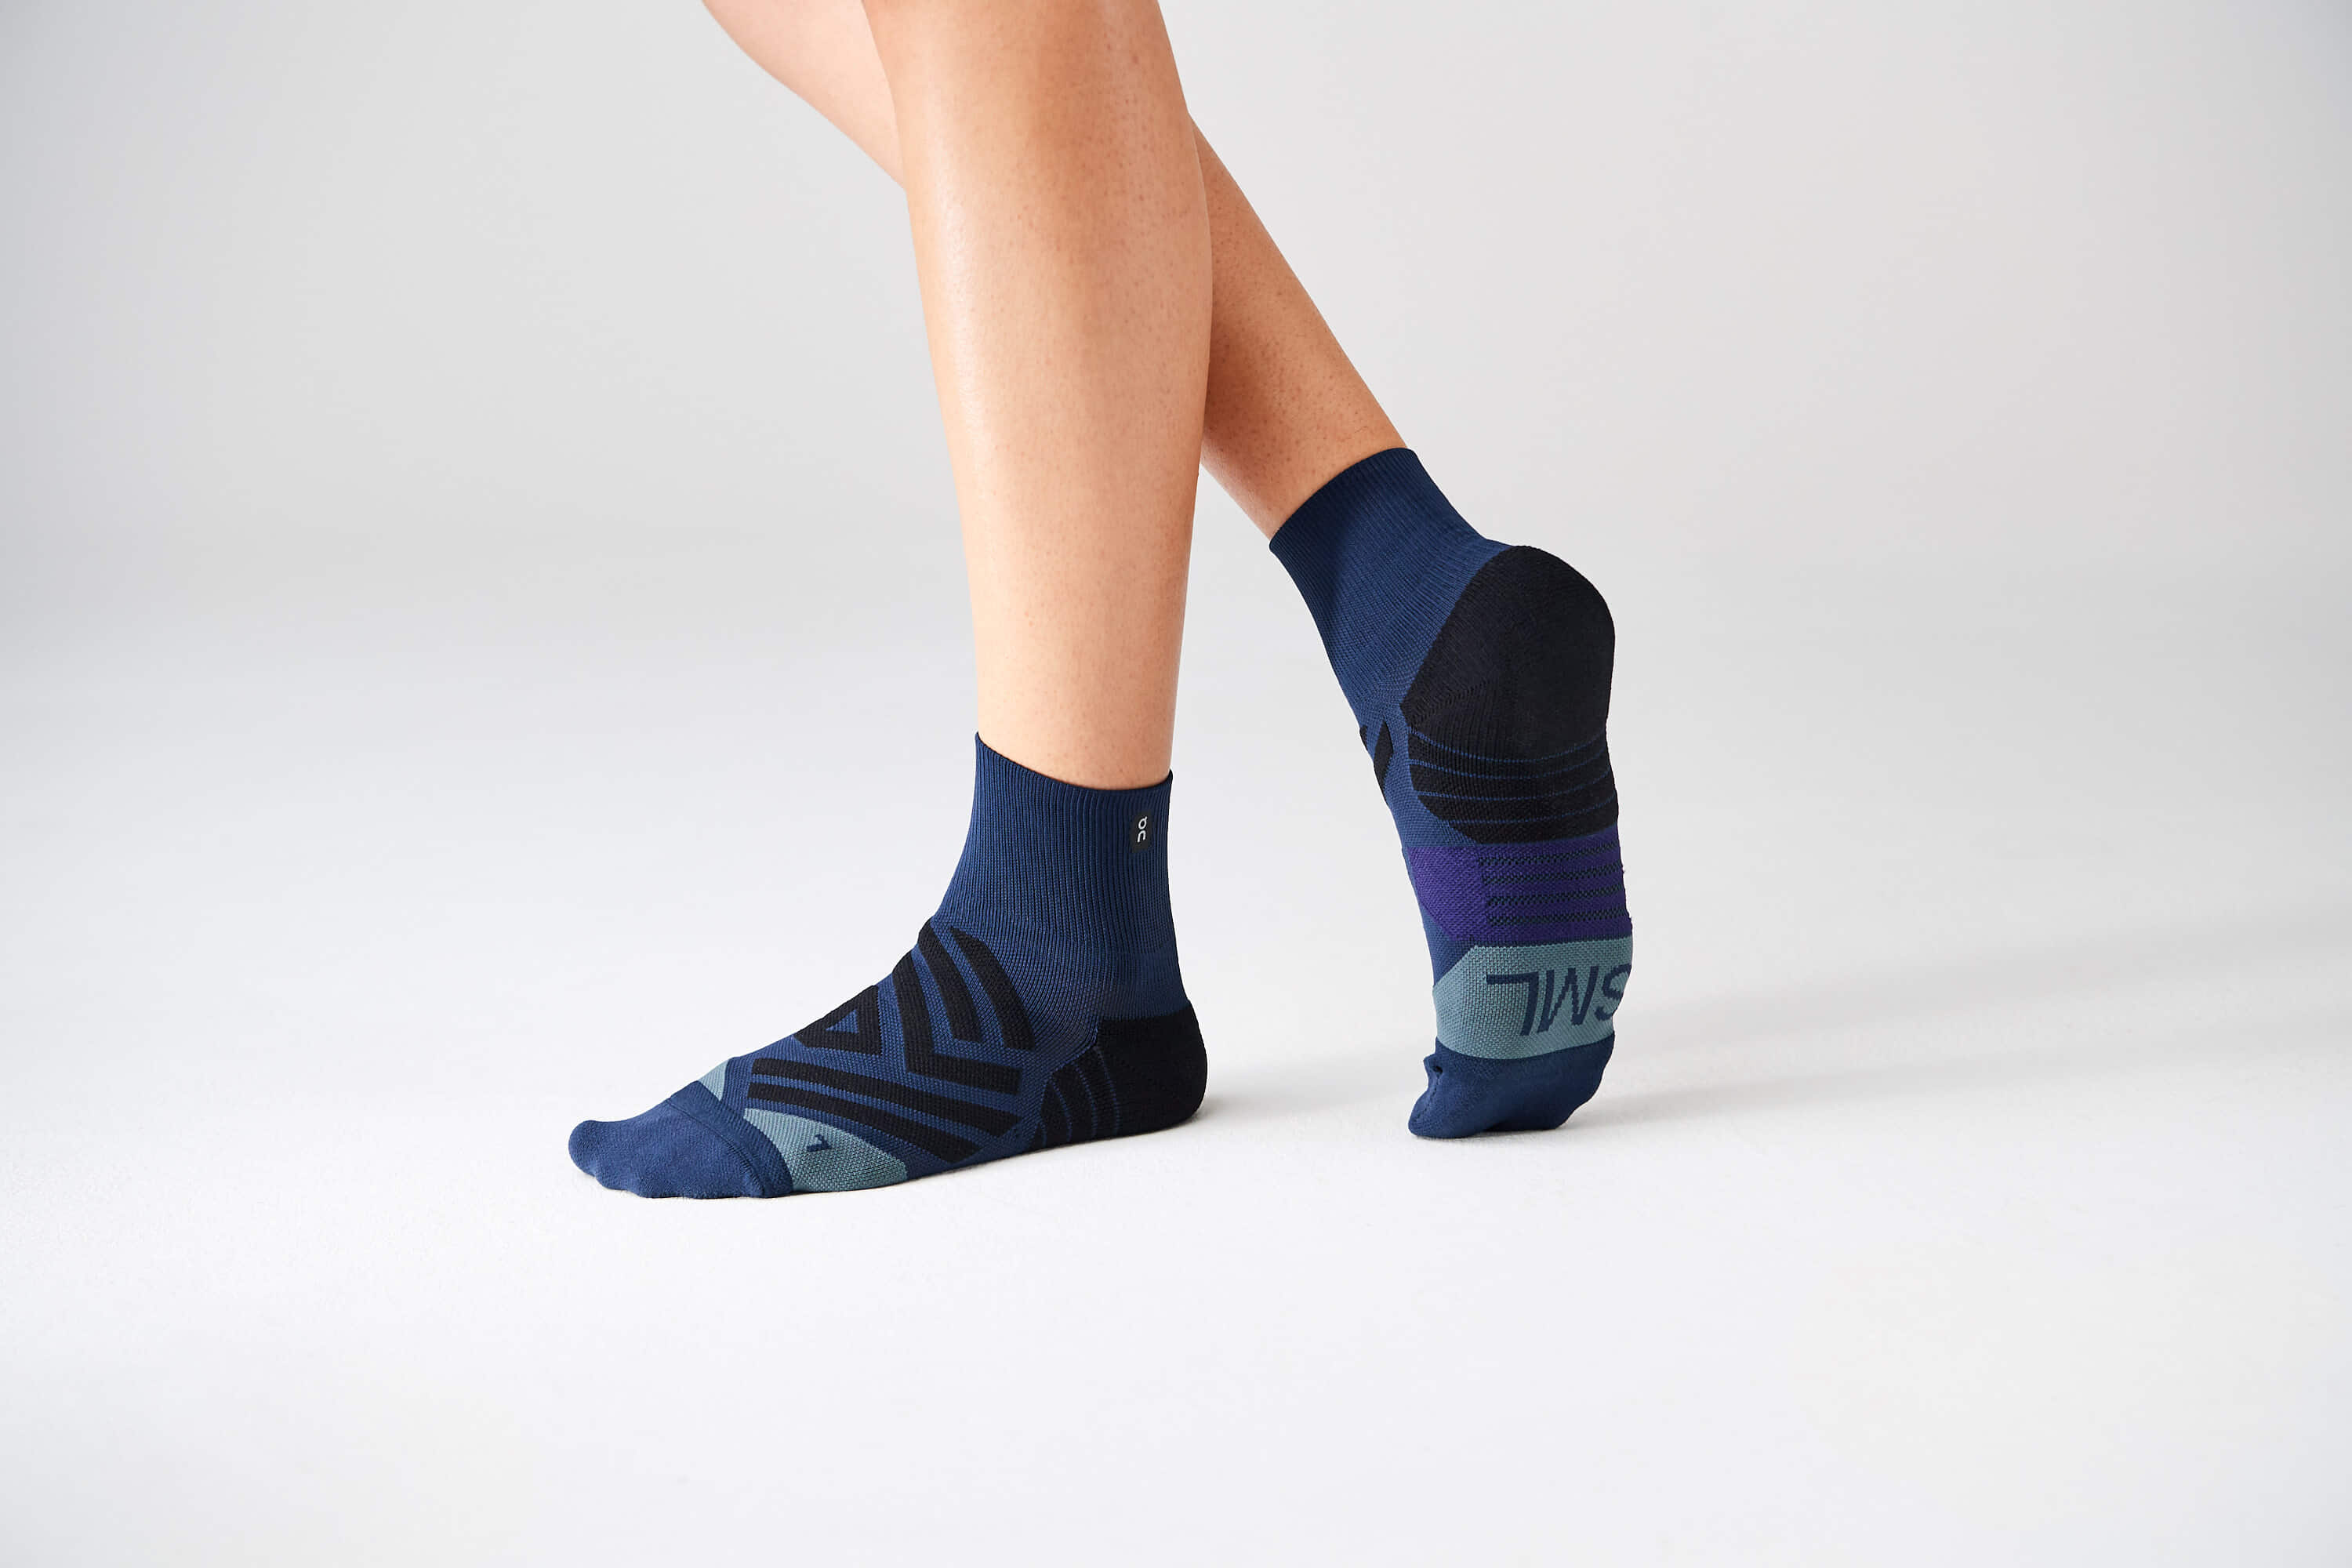 Black%20friday%20socks%20w